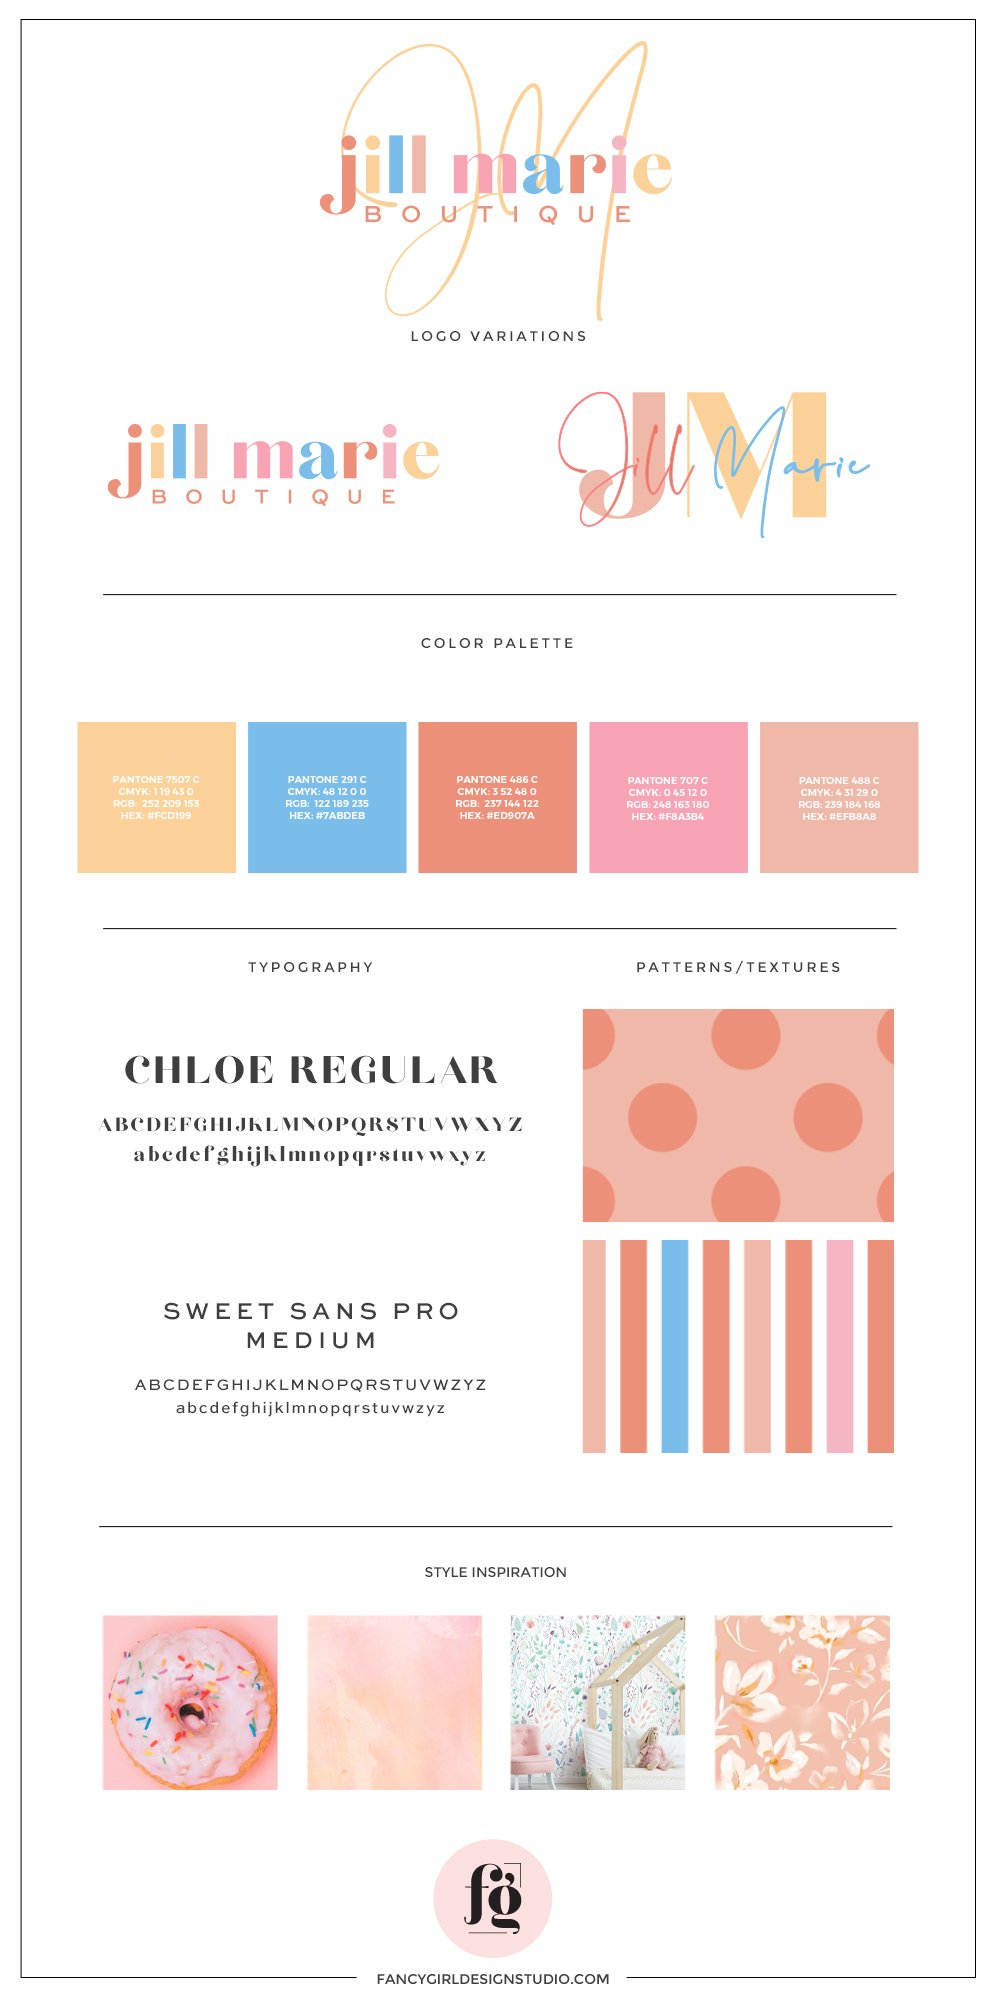 brand guide for Jill Marie Boutique | designed by Fancy Girl Design Studio